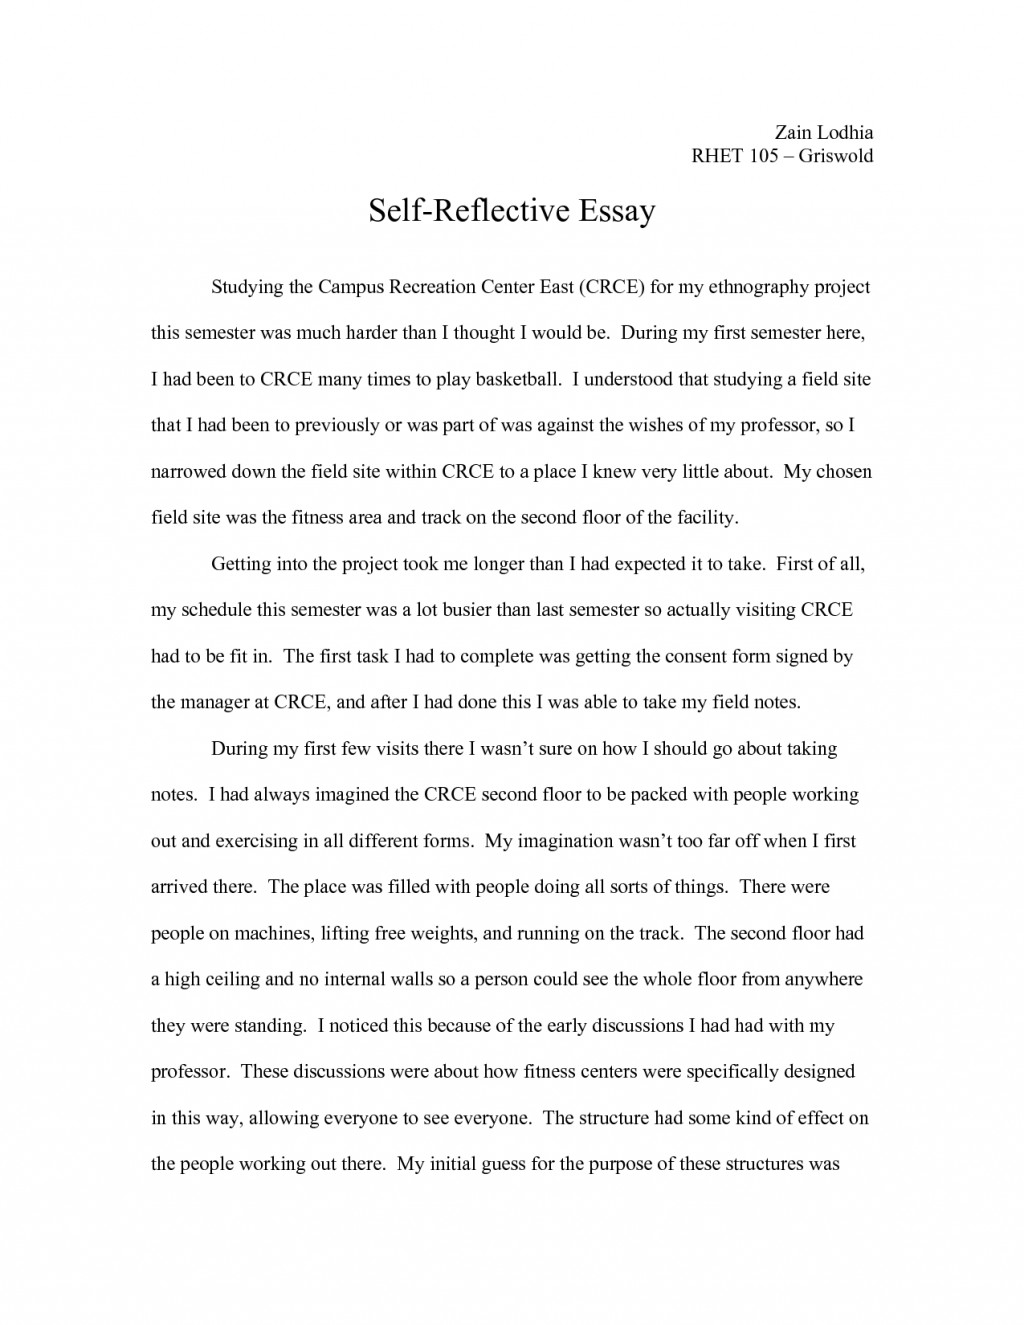 028 How To Write And Essay Qal0pwnf46 Unique An Conclusion University Level Outline For College Placement Test Large